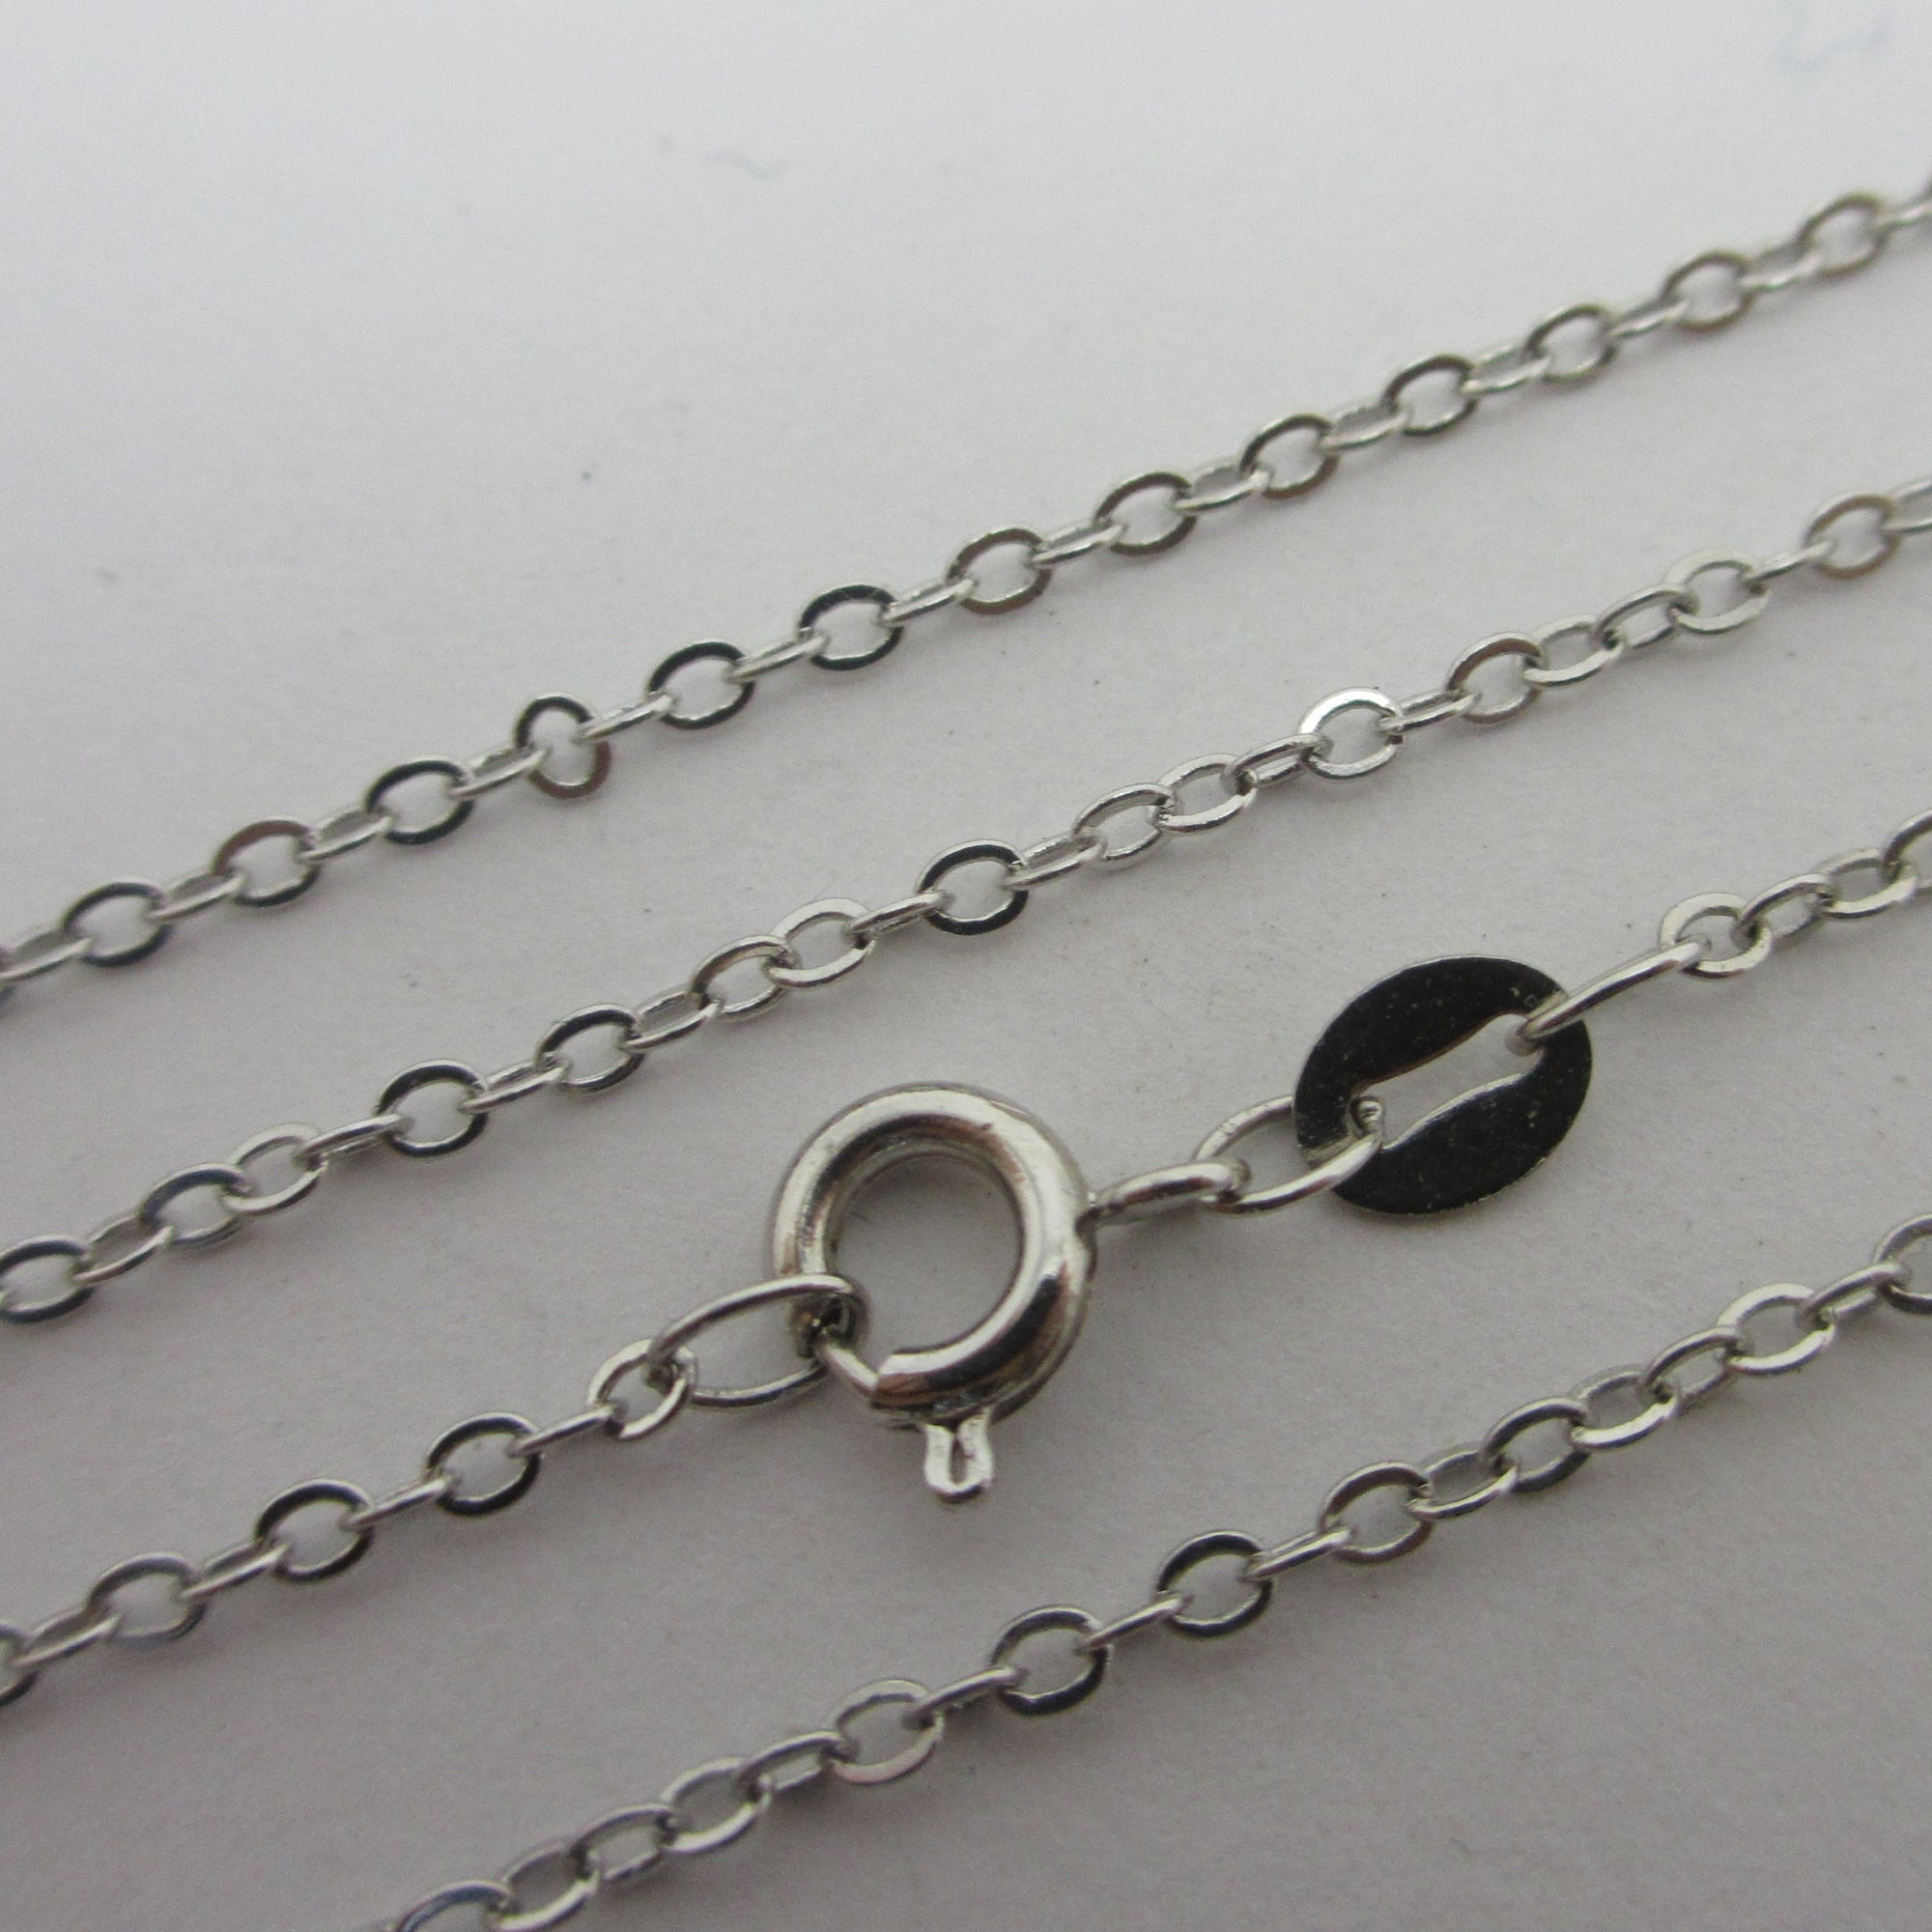 "Sterling Silver Cable Link Chain Necklace 61.3cm/24.1"" Vintage c1980"